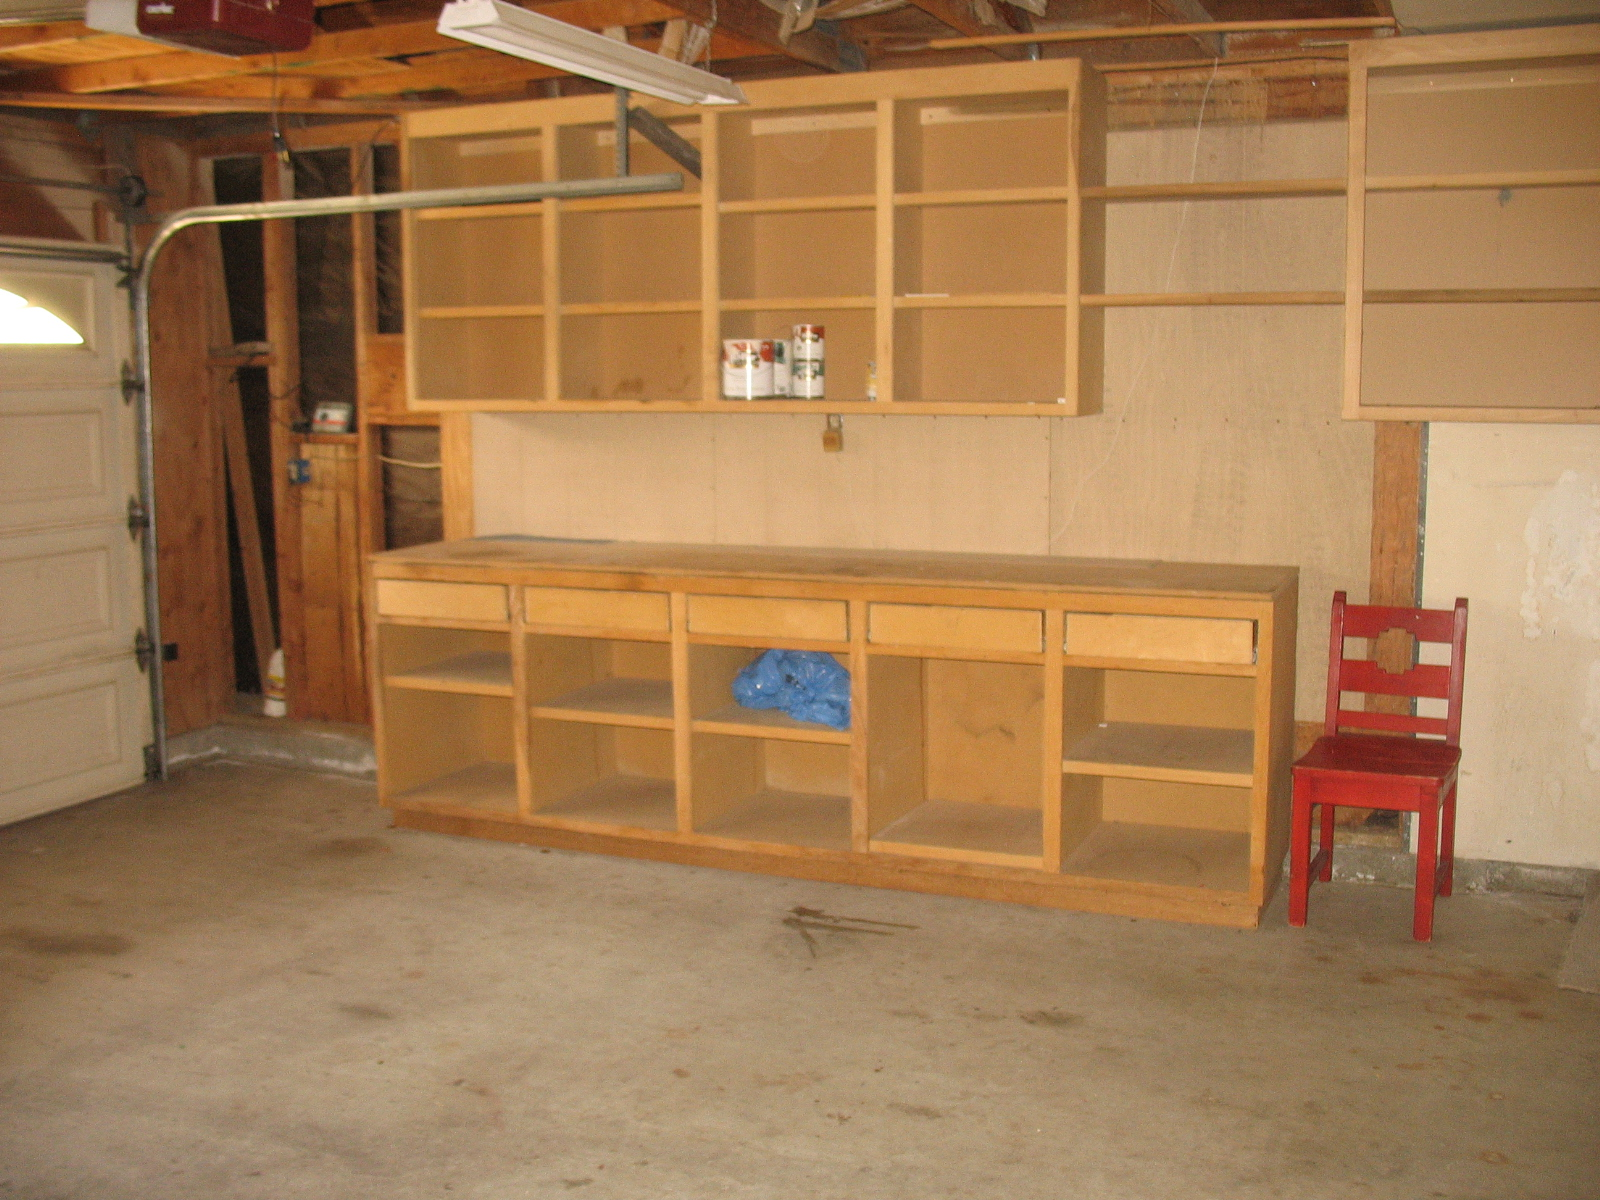 Garage Workbench Is A Good Way To Save Your Tools : Gorgeous Wooden Style Garage Workbench Storage Orgazation DEsign